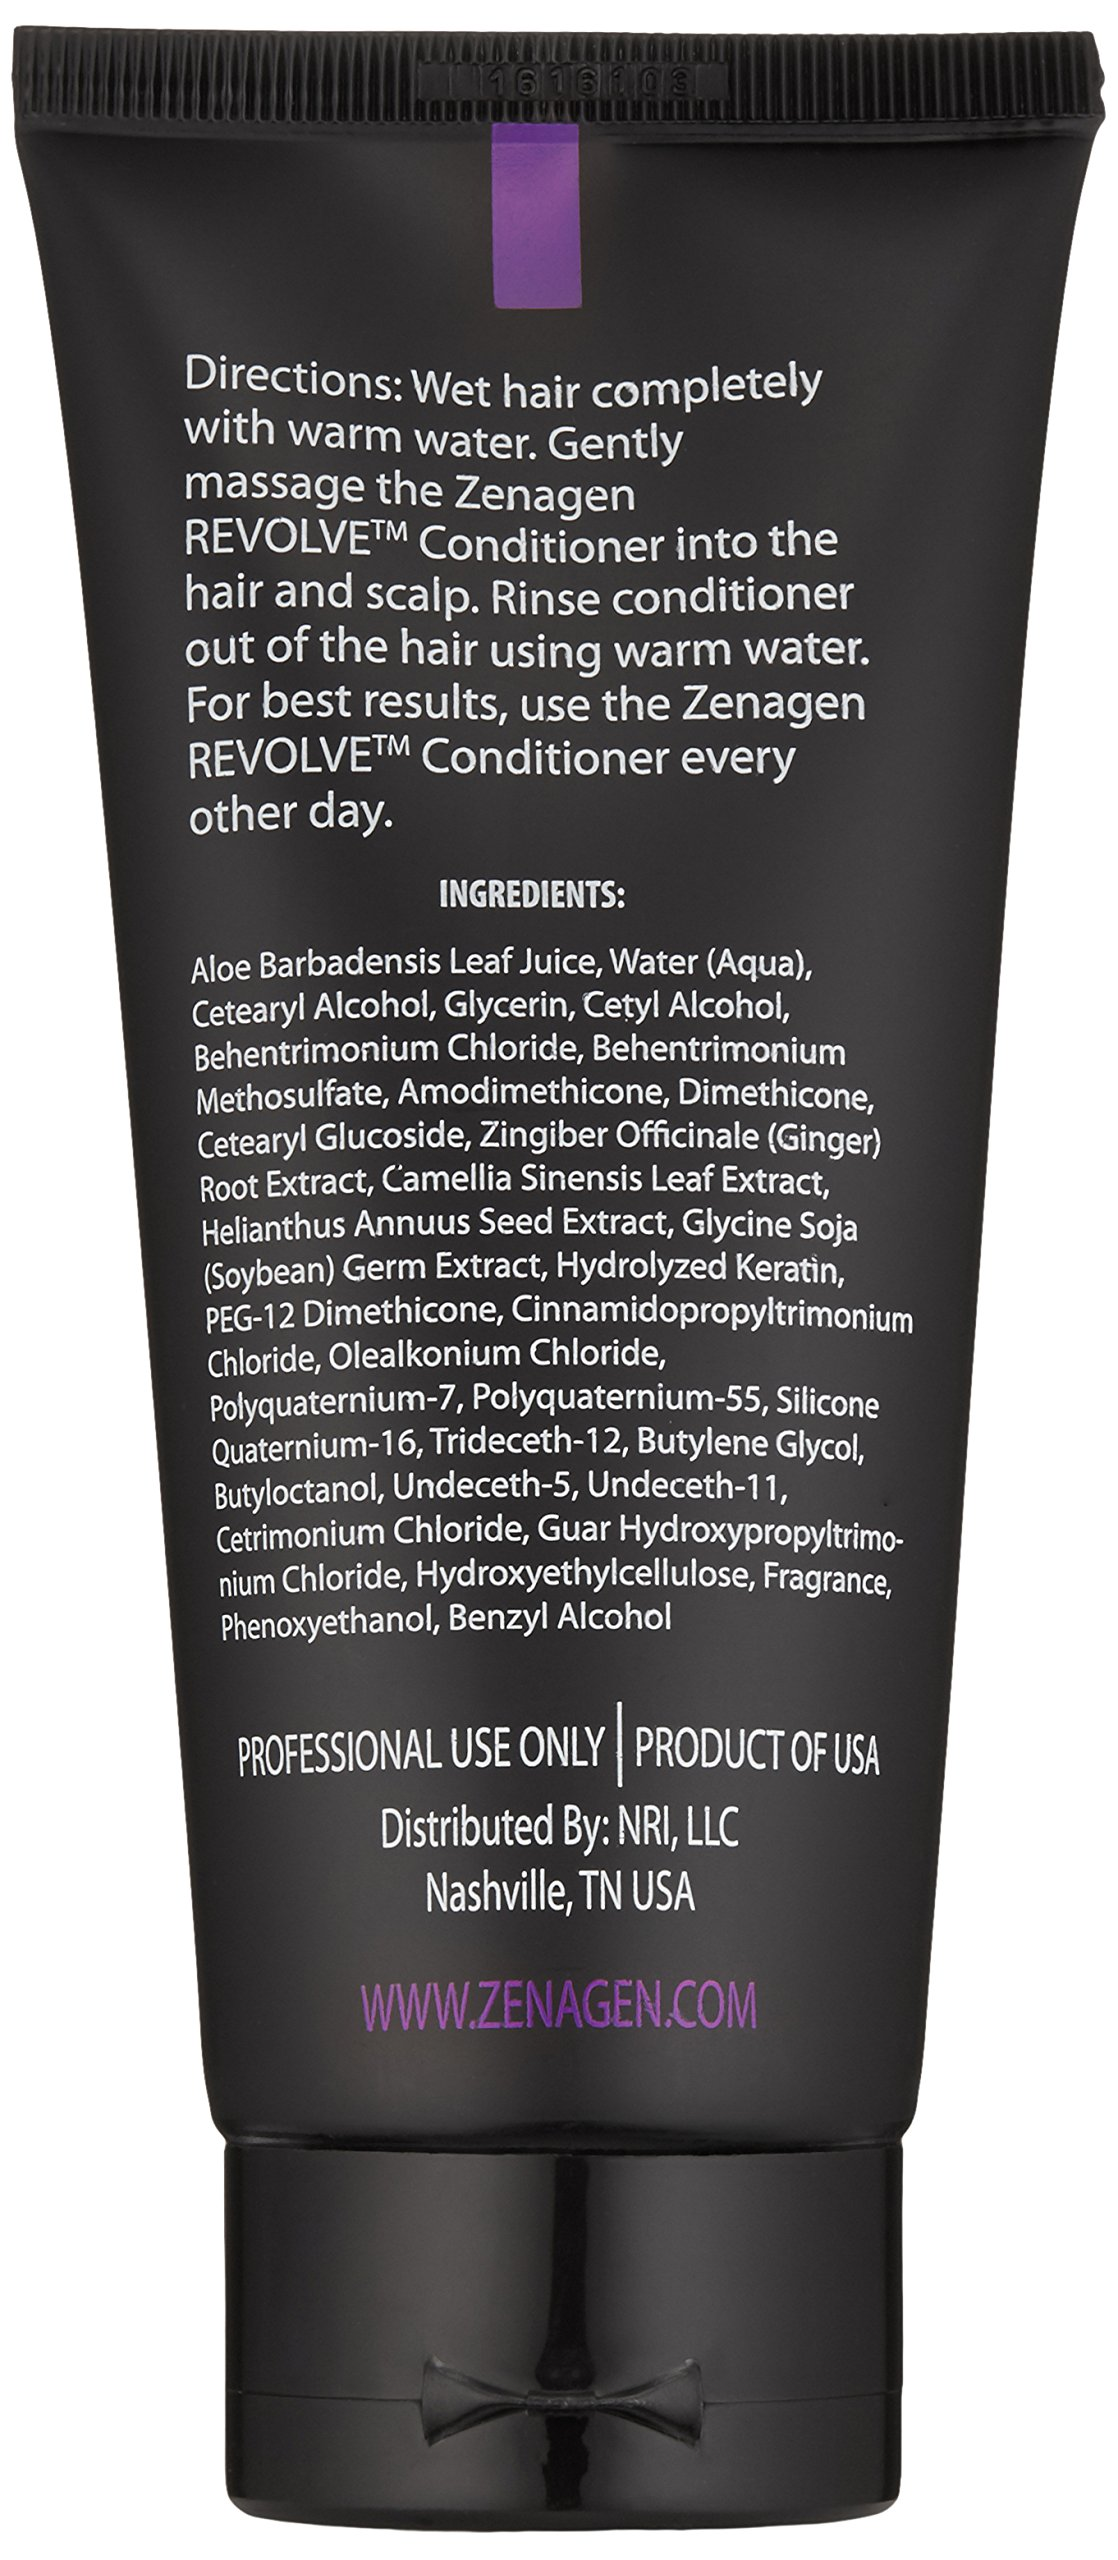 Zenagen Revolve Thickening Conditioner for Hair Loss and Fine Hair, 5 oz. by Zenagen (Image #5)